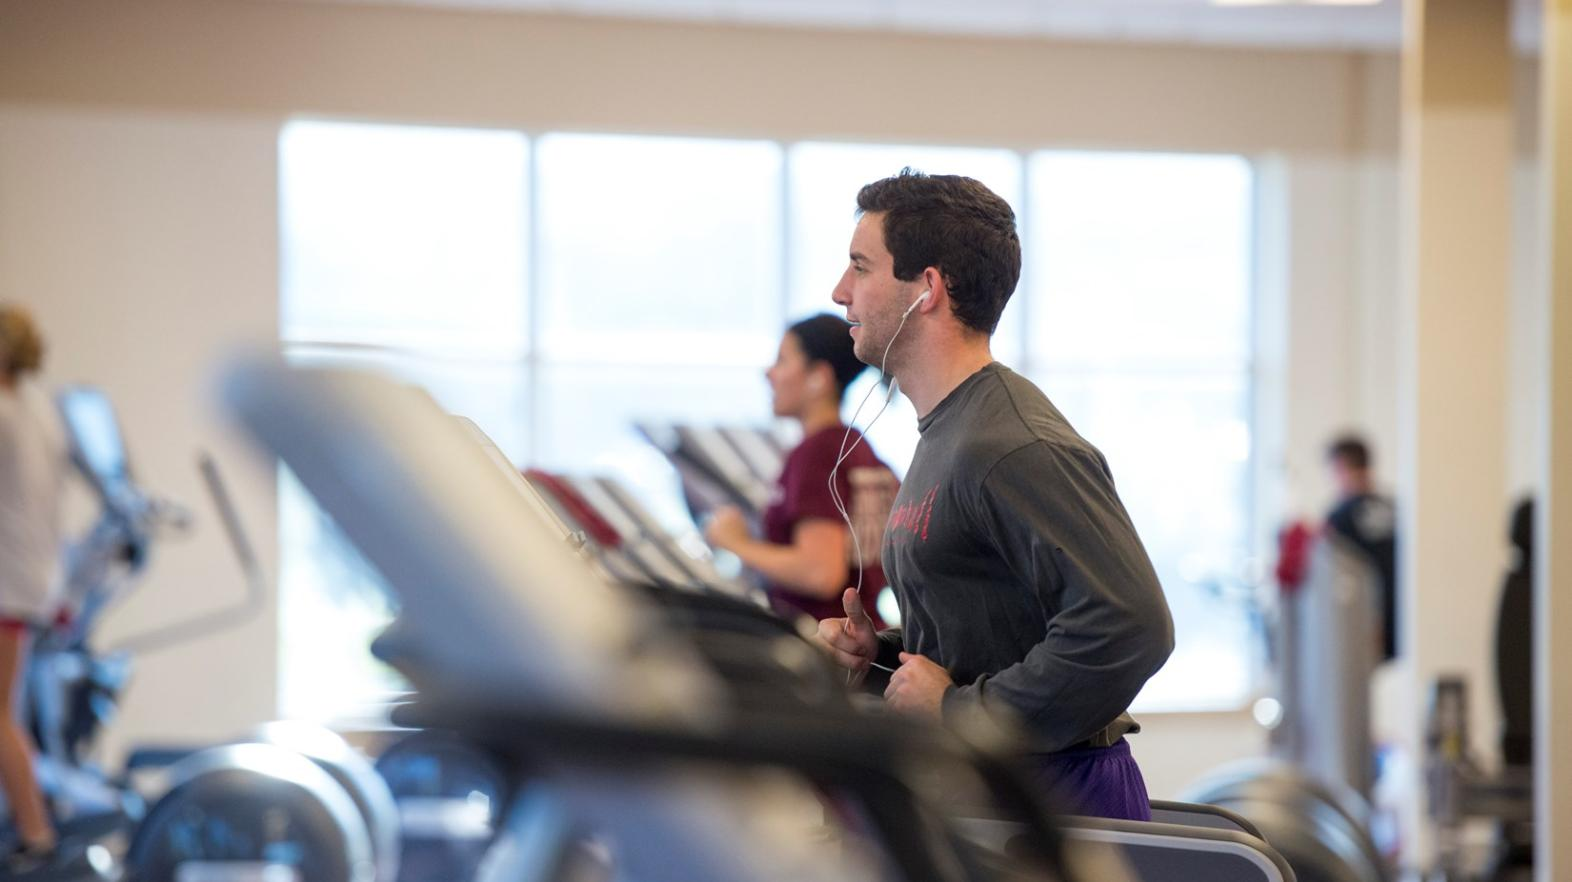 Male student works out in the Wellness Center within the Springfield College Wellness & Recreation Complex